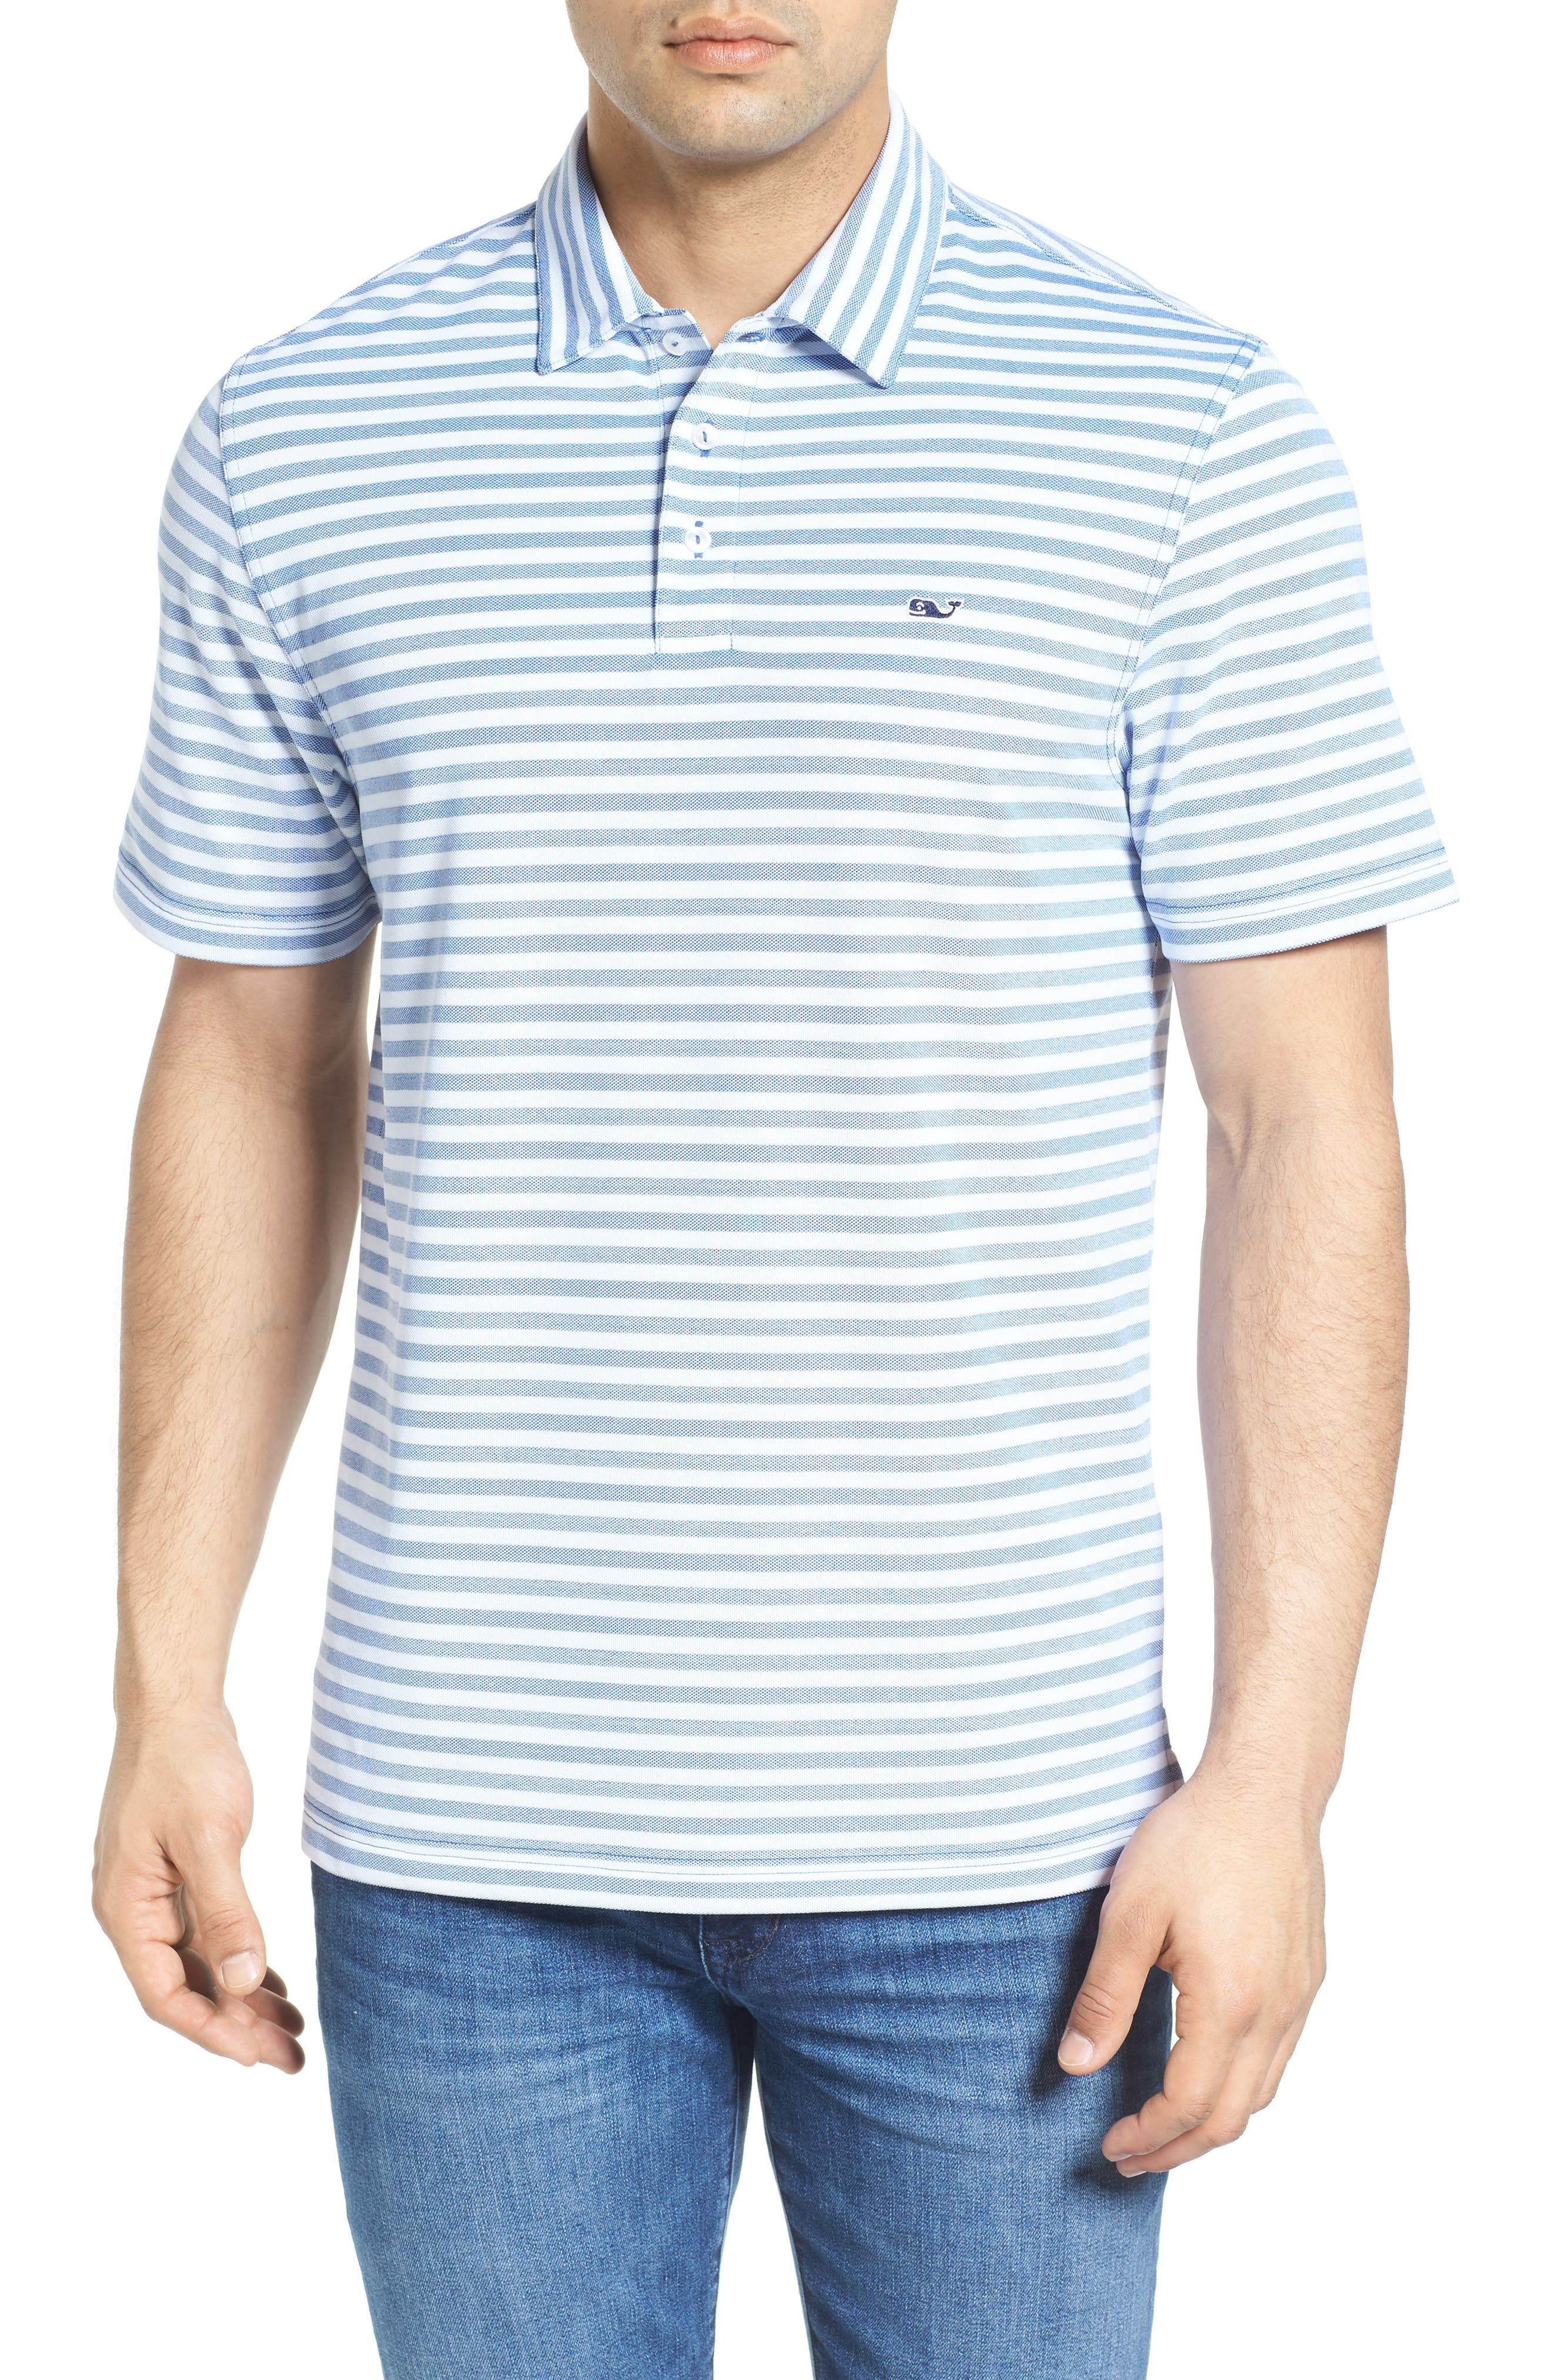 Vineyard Vines Stripe Polo